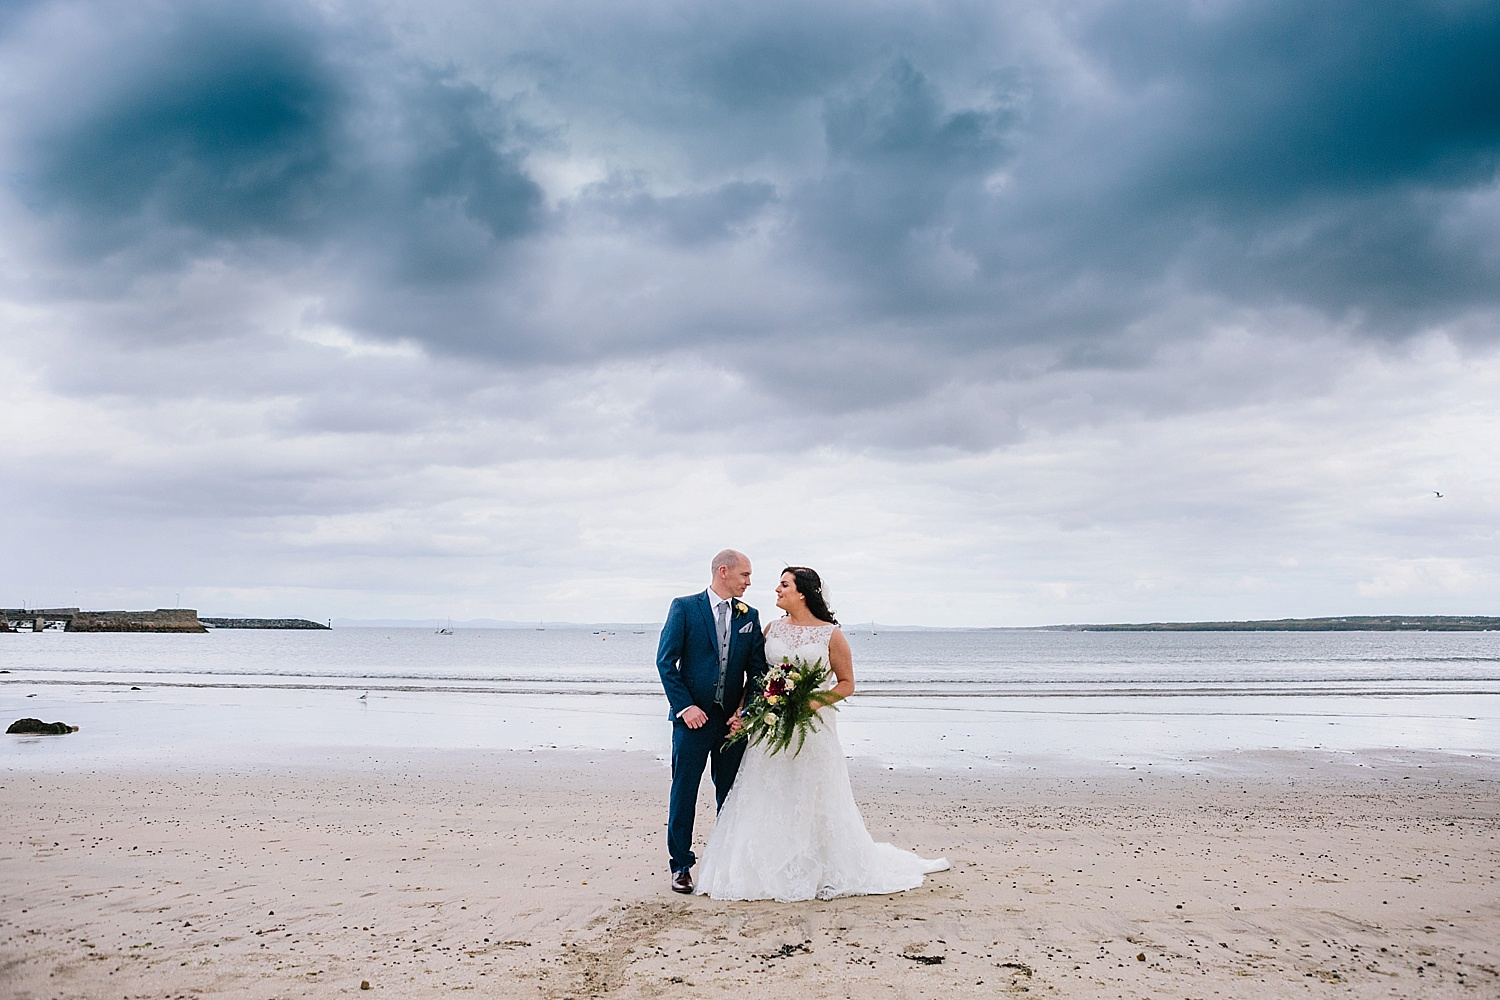 castle_dargan_wedding-fermanagh_wedding_photographer-ashford_castle_wedding-best_of_2016_sharon_kee_photography_0147